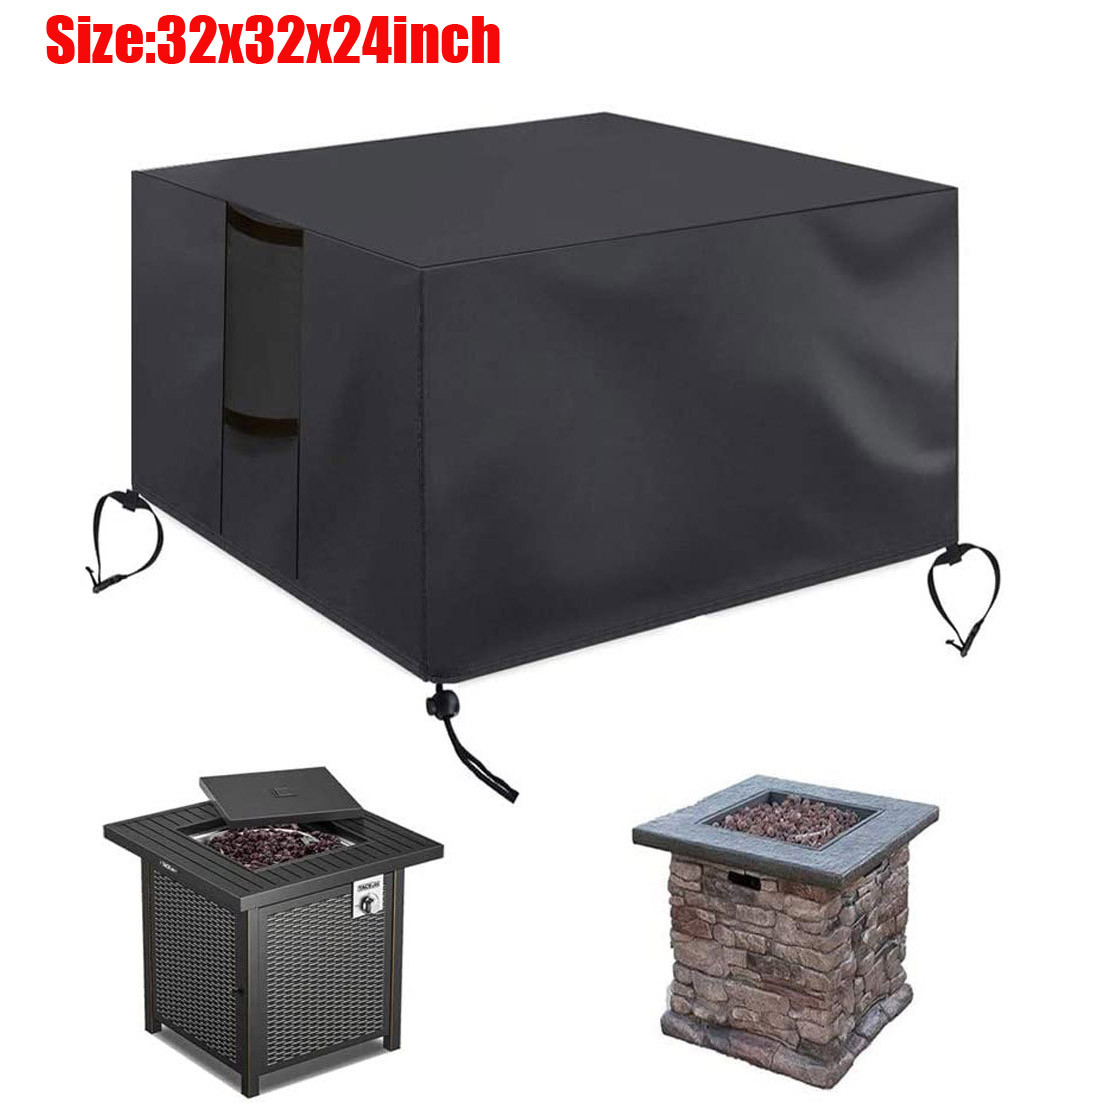 Gas Fire Cover Square - 32x32x24 Inch Waterproof Anti-uv Heavy Duty For Patio